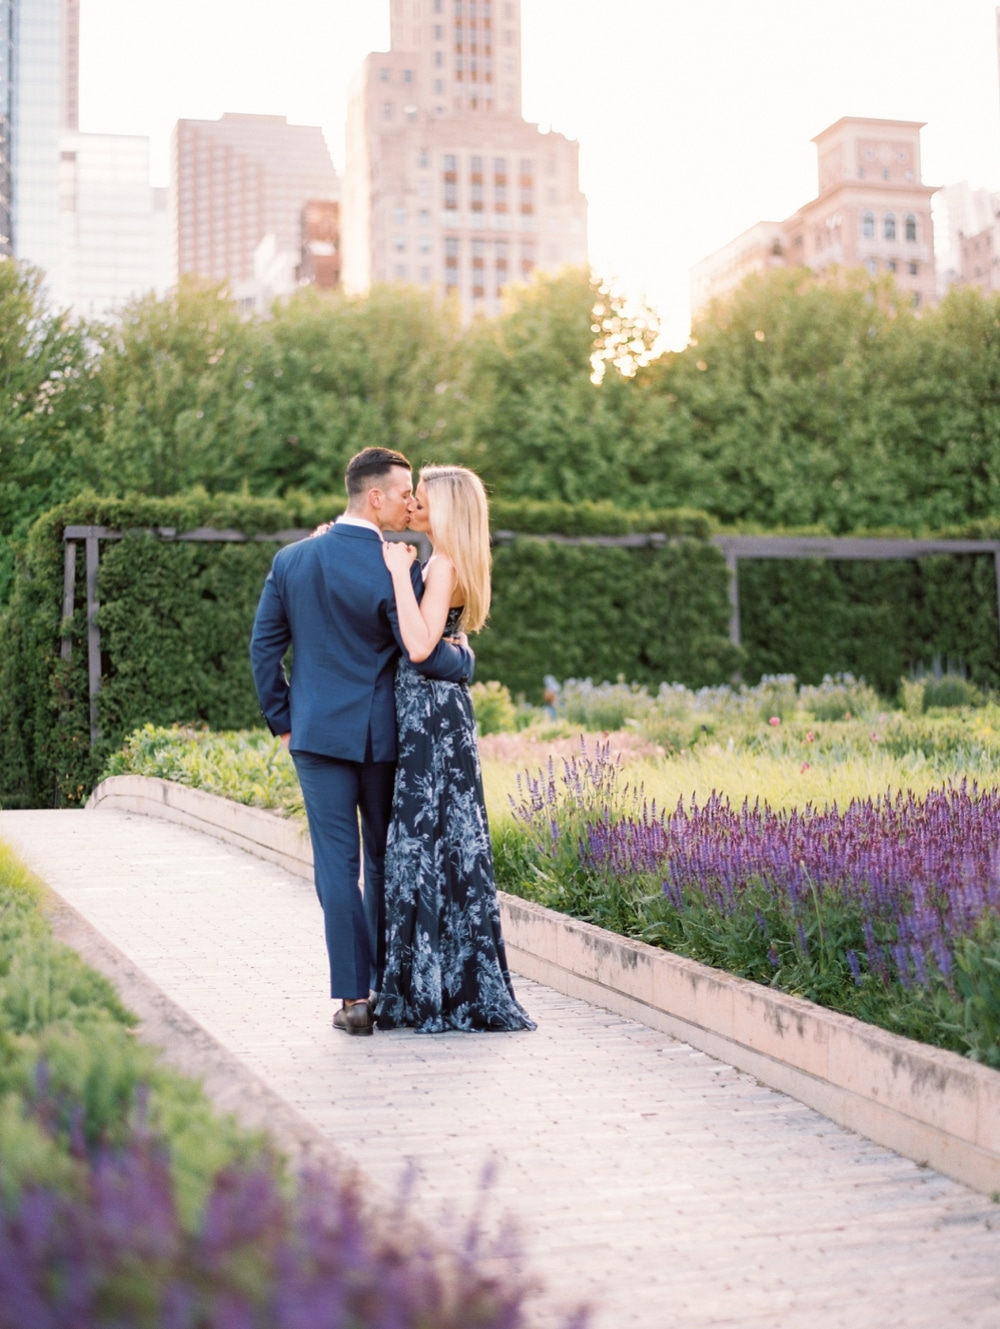 kristin-la-voie-photography-Chicago-Wedding-Photographer-Art-Institute-Lurie-Garden-Millennium-Park-45